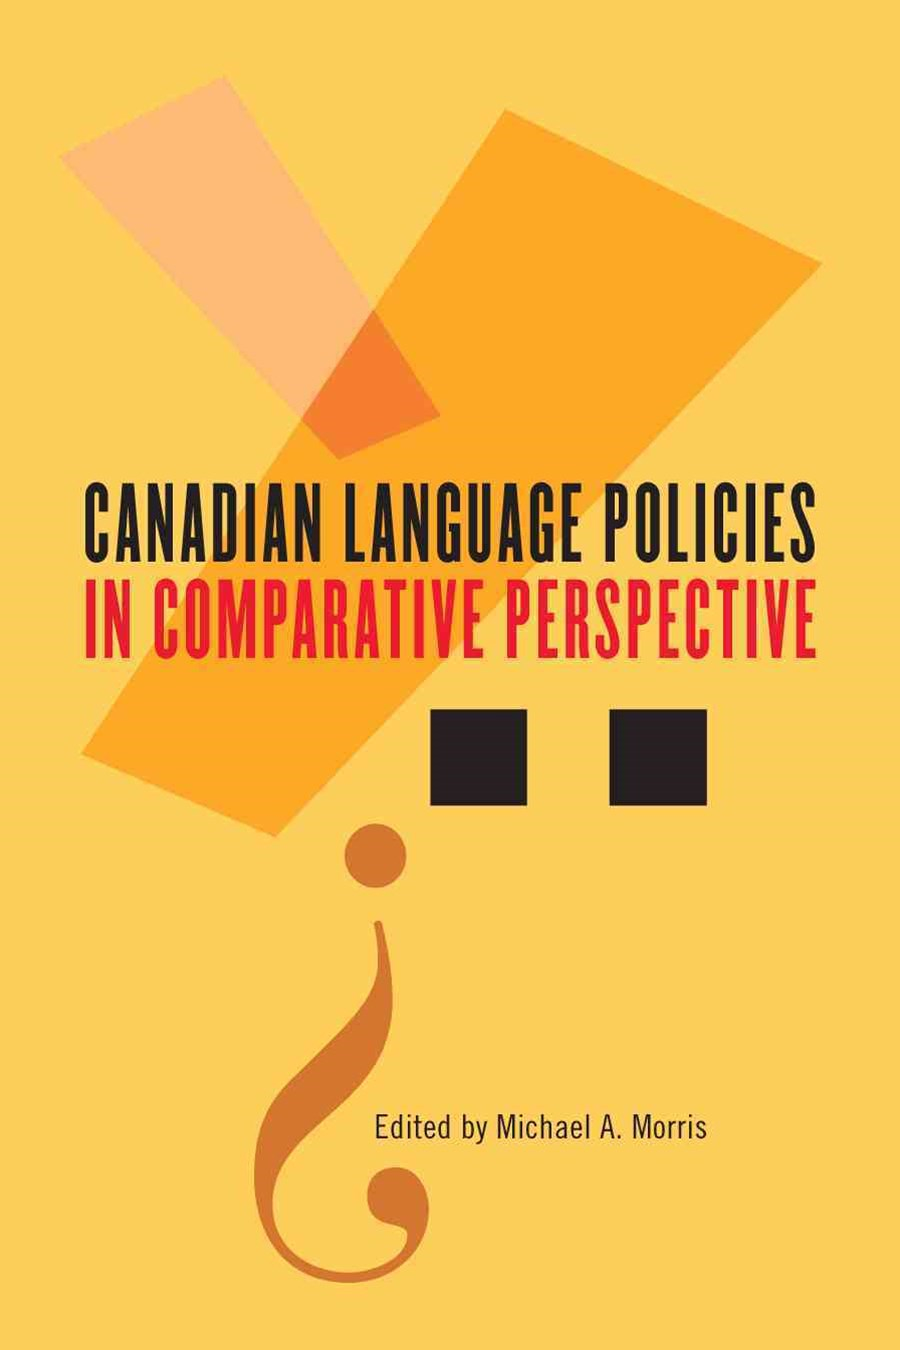 Canadian Language Policies in Comparative Perspective